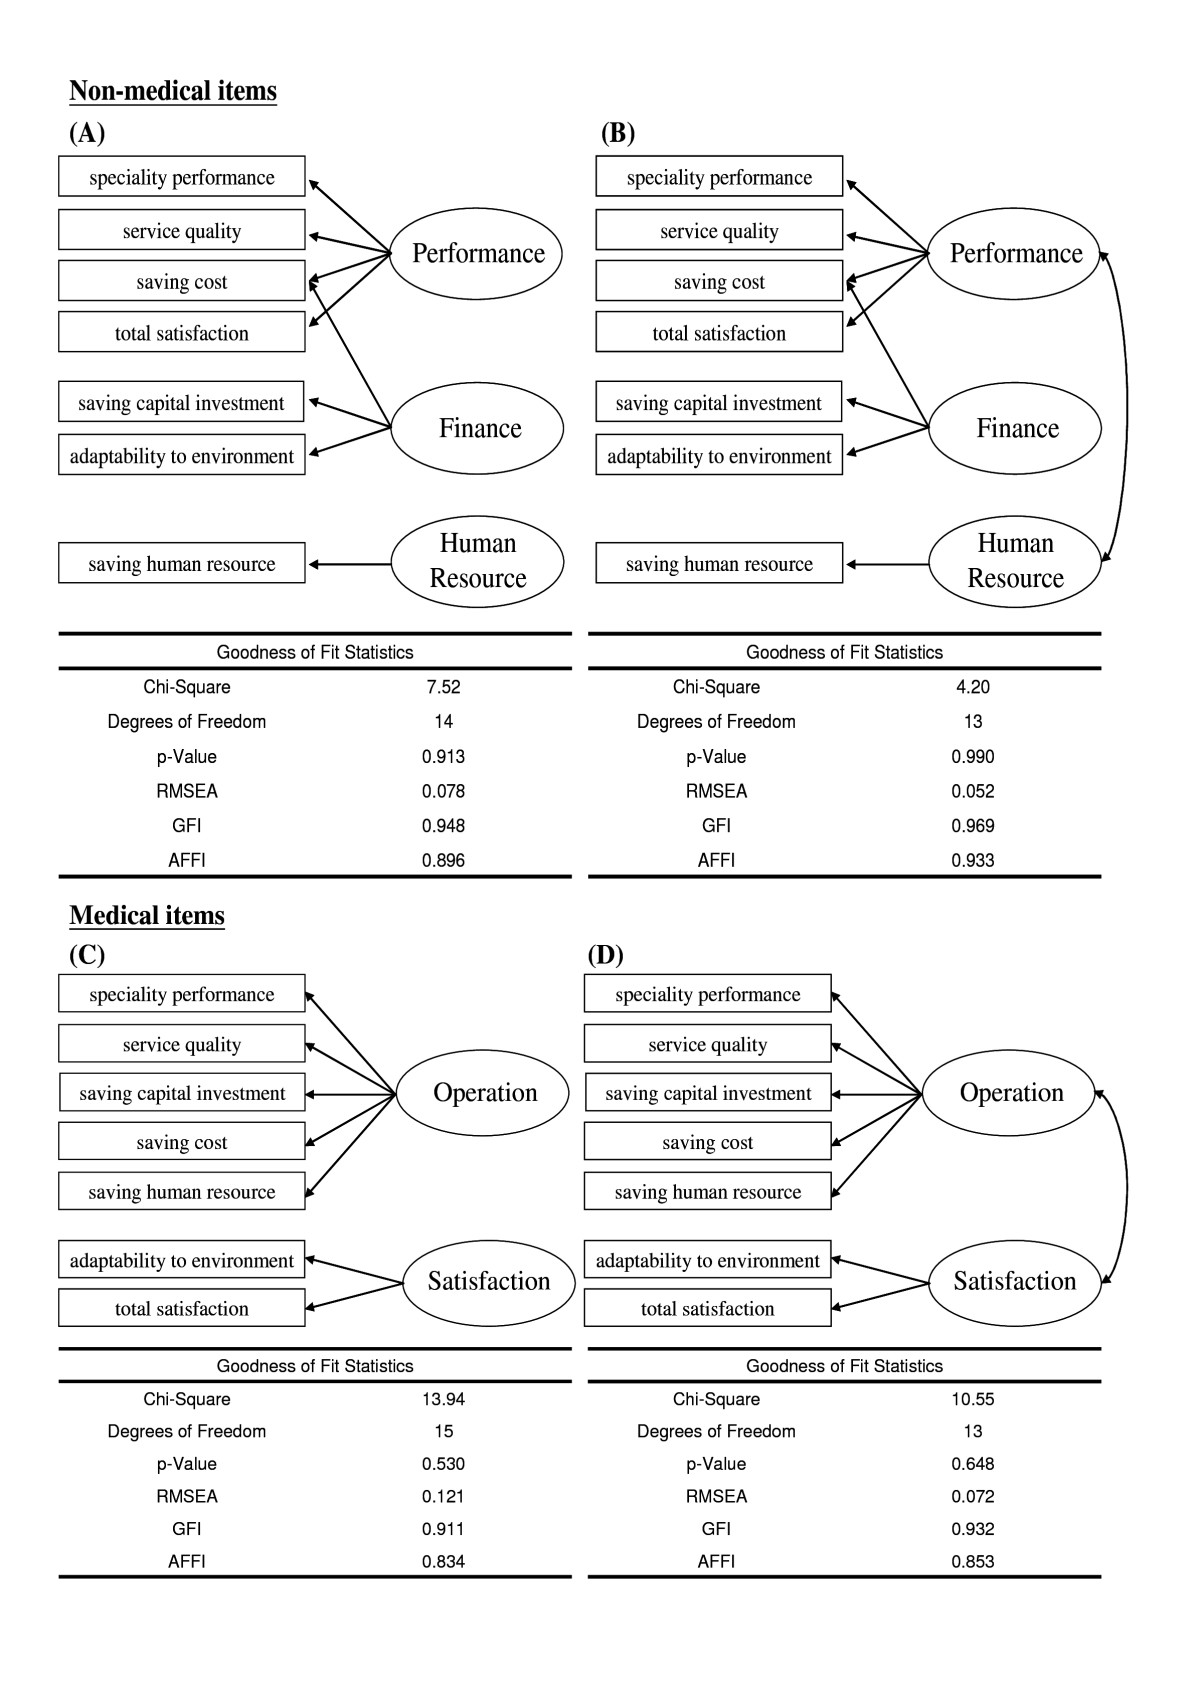 https://static-content.springer.com/image/art%3A10.1186%2F1472-6963-9-78/MediaObjects/12913_2008_Article_949_Fig1_HTML.jpg